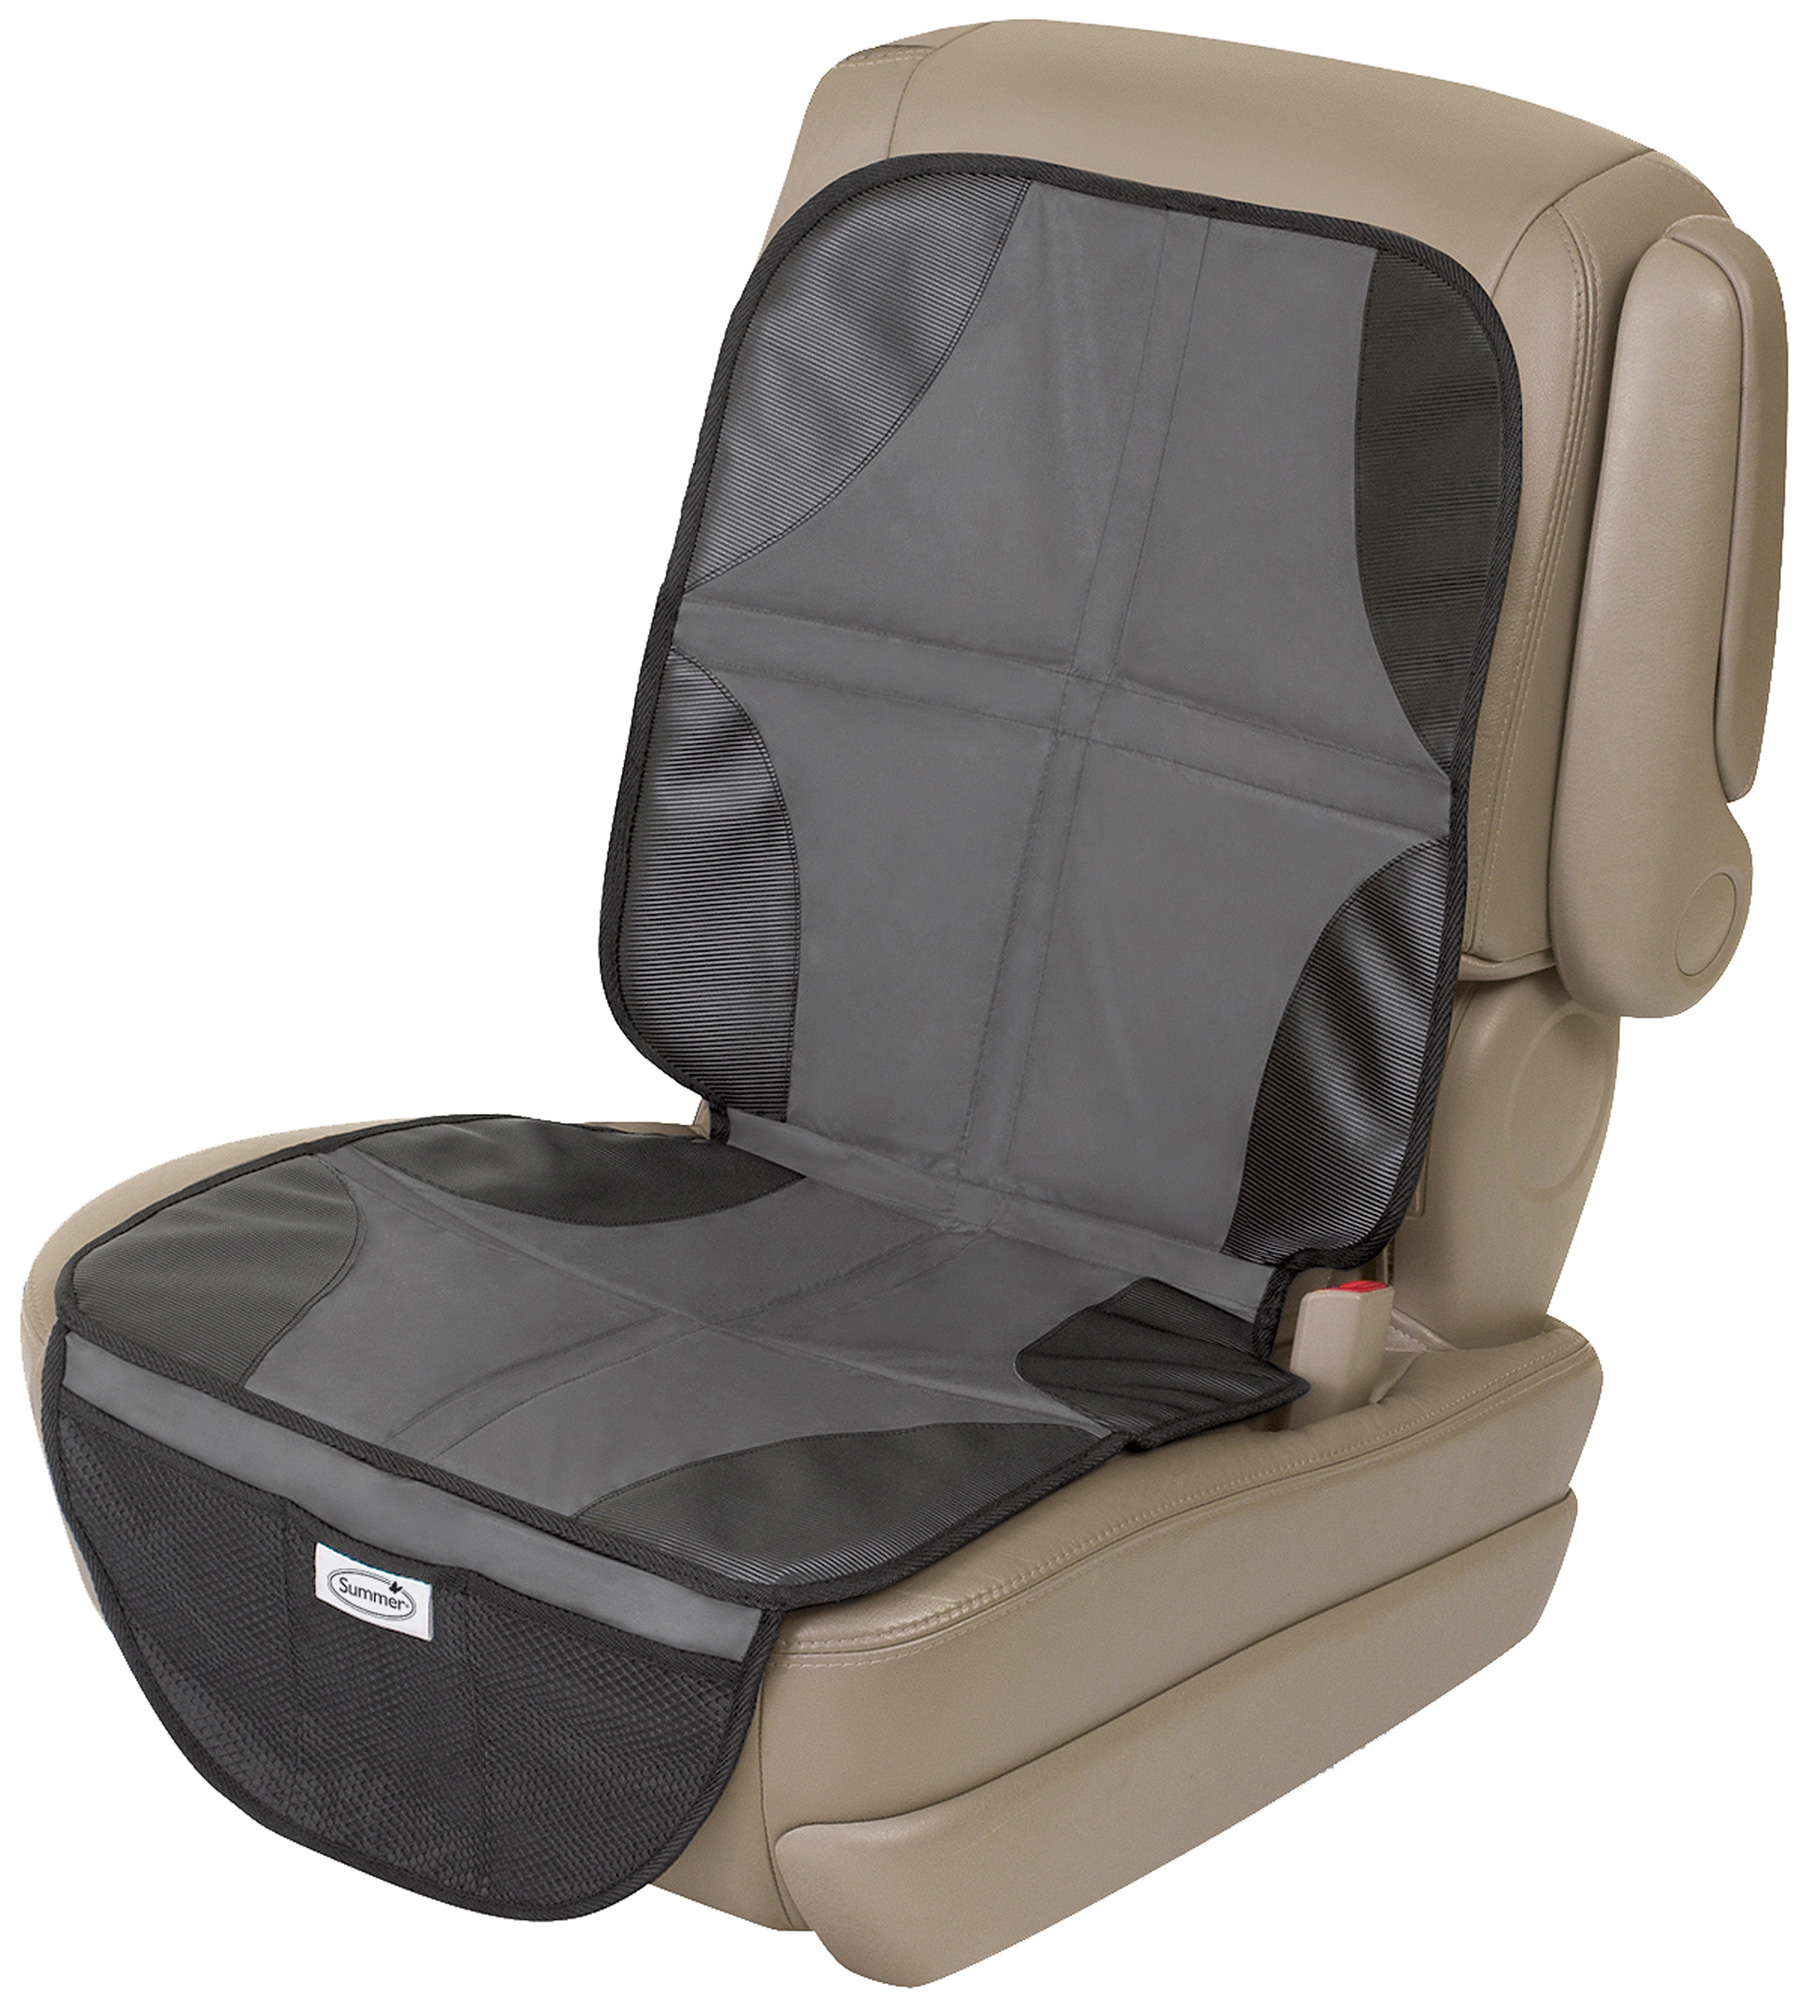 summer infant duo mat car seat protector liner black grey travel safety bn. Black Bedroom Furniture Sets. Home Design Ideas